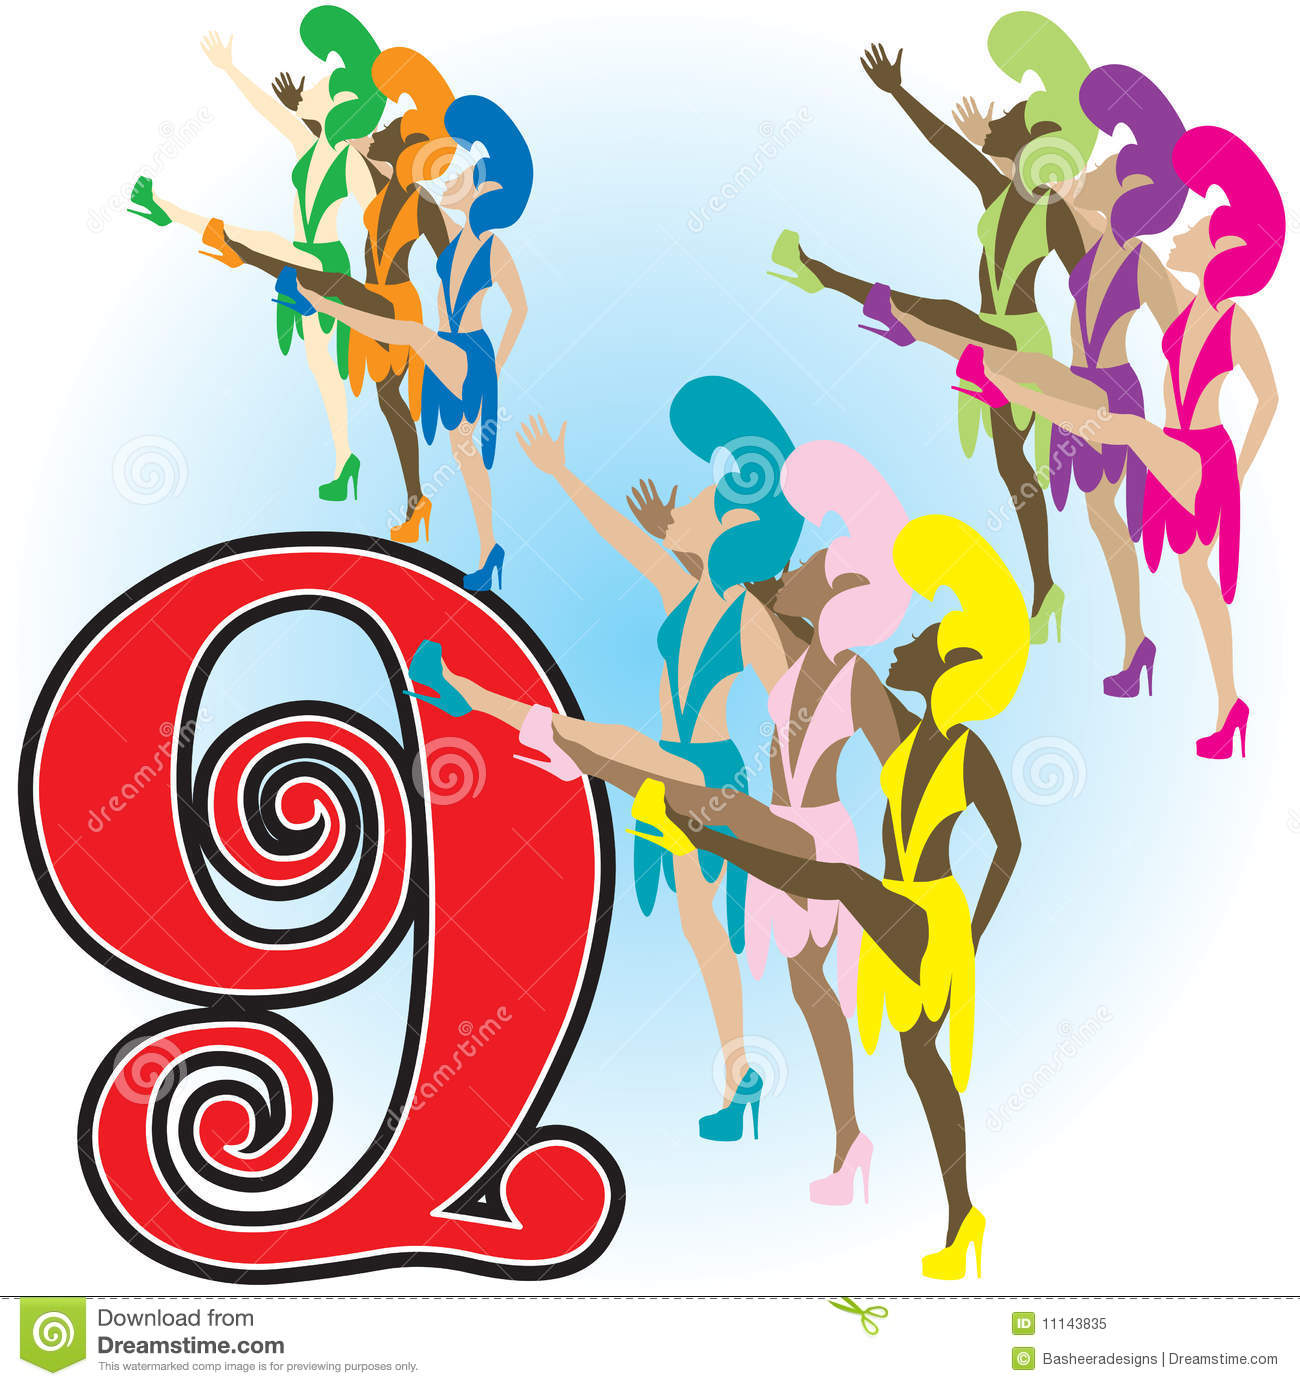 9 Ladies Dancing Clipart.